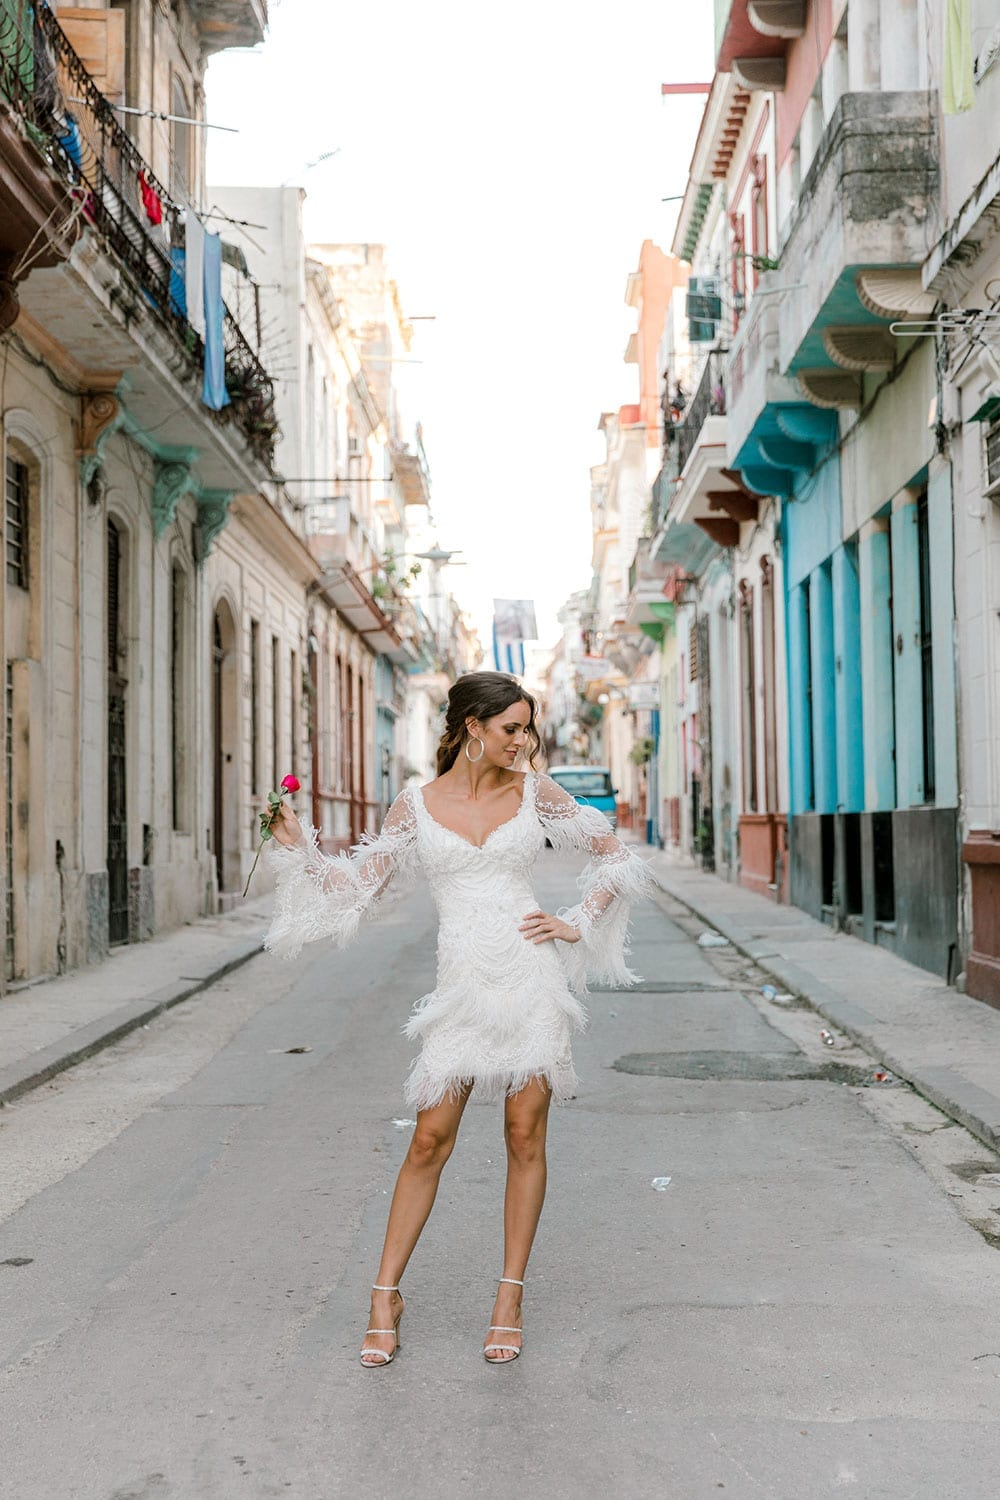 Model wearing Vinka Design Chanel Wedding Dress, a Beaded French Lace Wedding Gown in beautiful streets of Havana